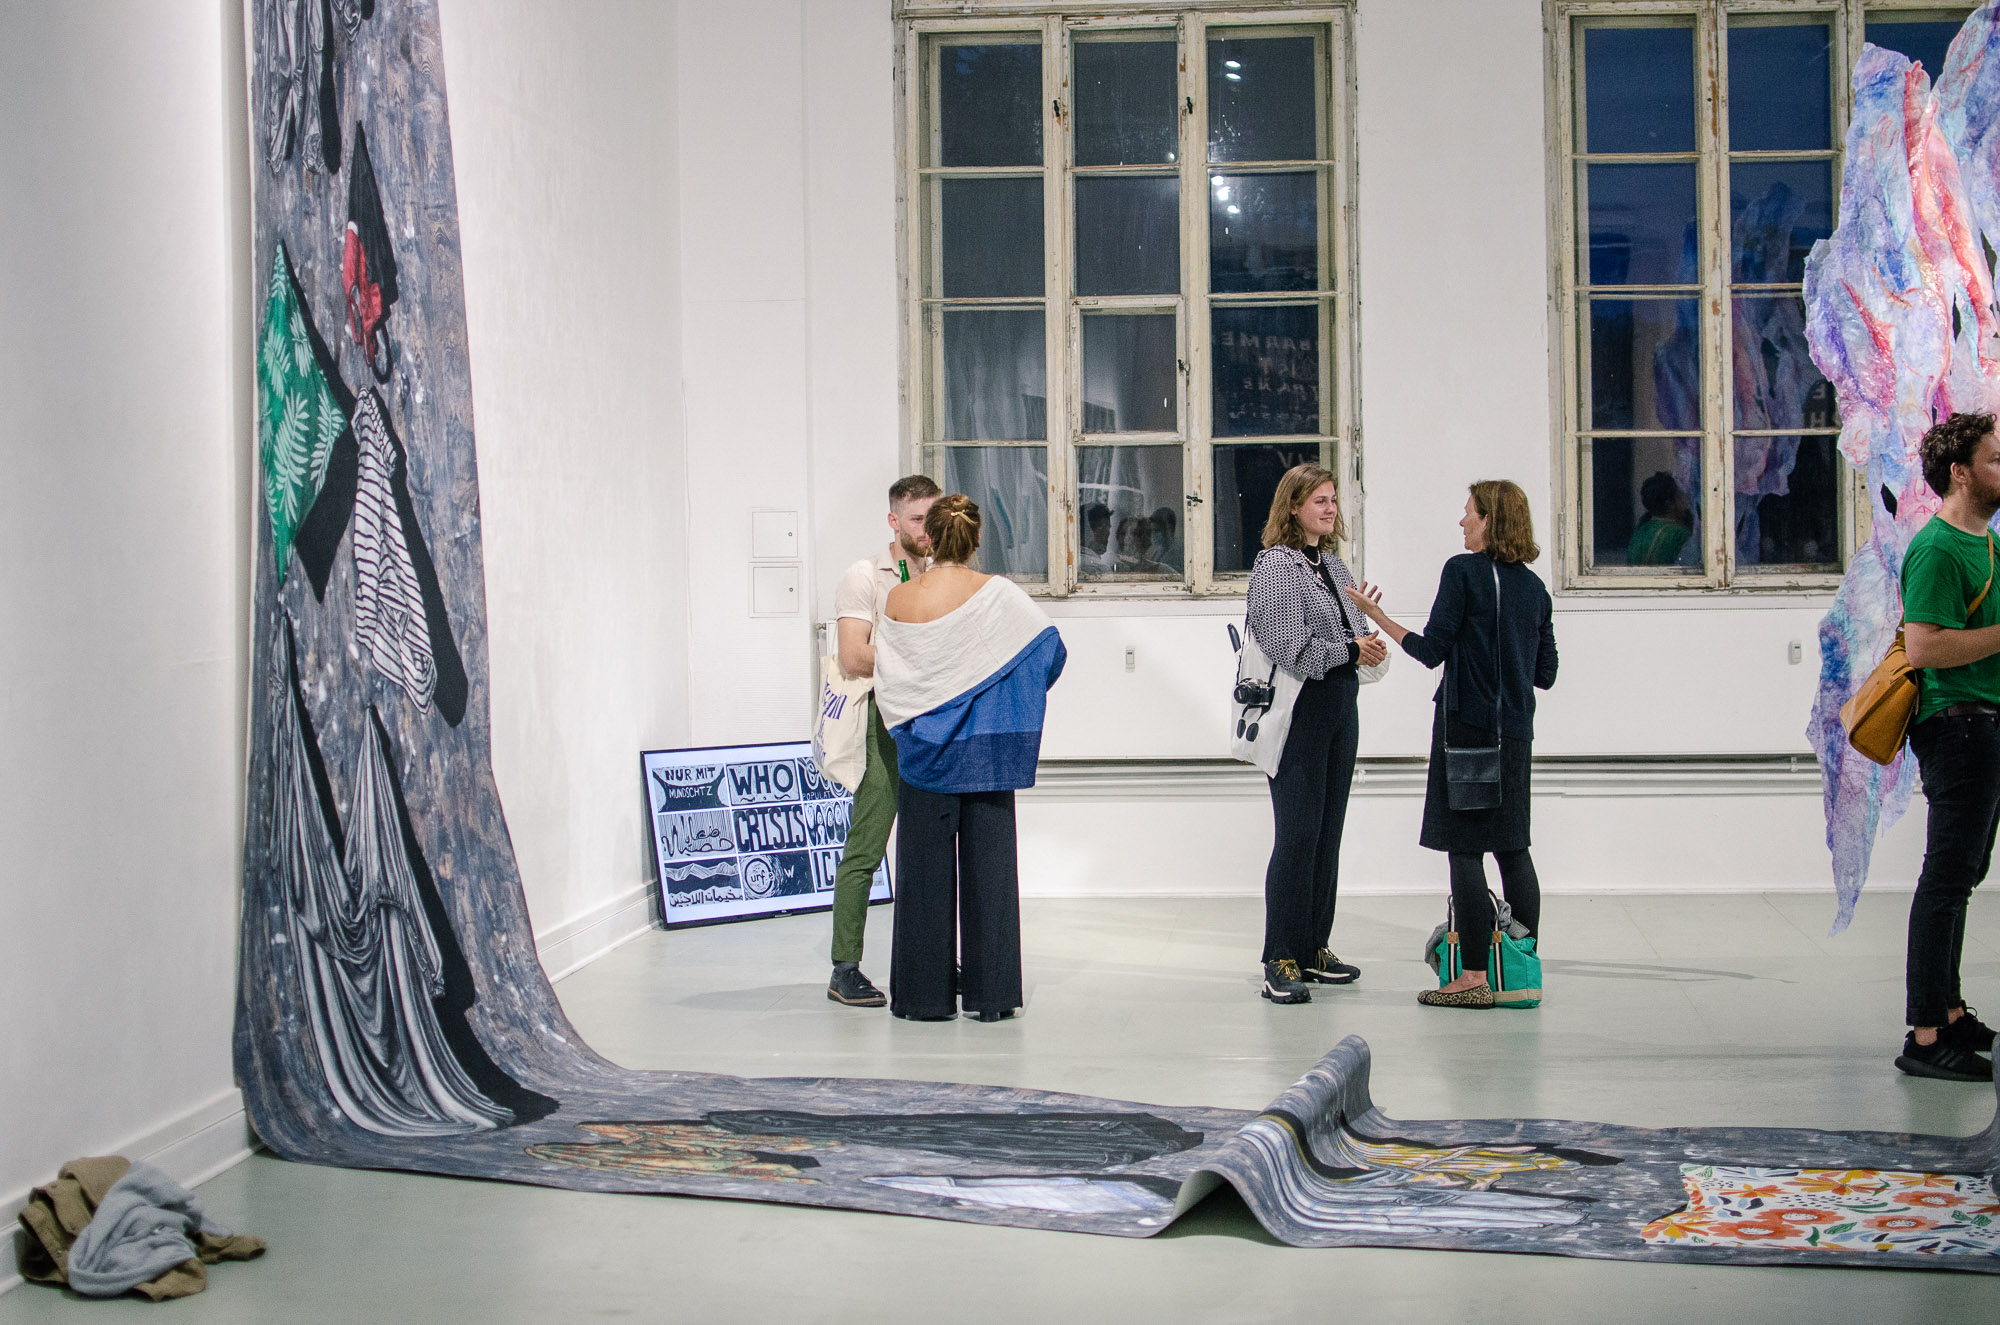 PKRD-48-Airy-Democratic-Spirituality-vernissage-PK-at-Alte-Handlesschule-20.08.21-Fanni-Papp-for-PK-19